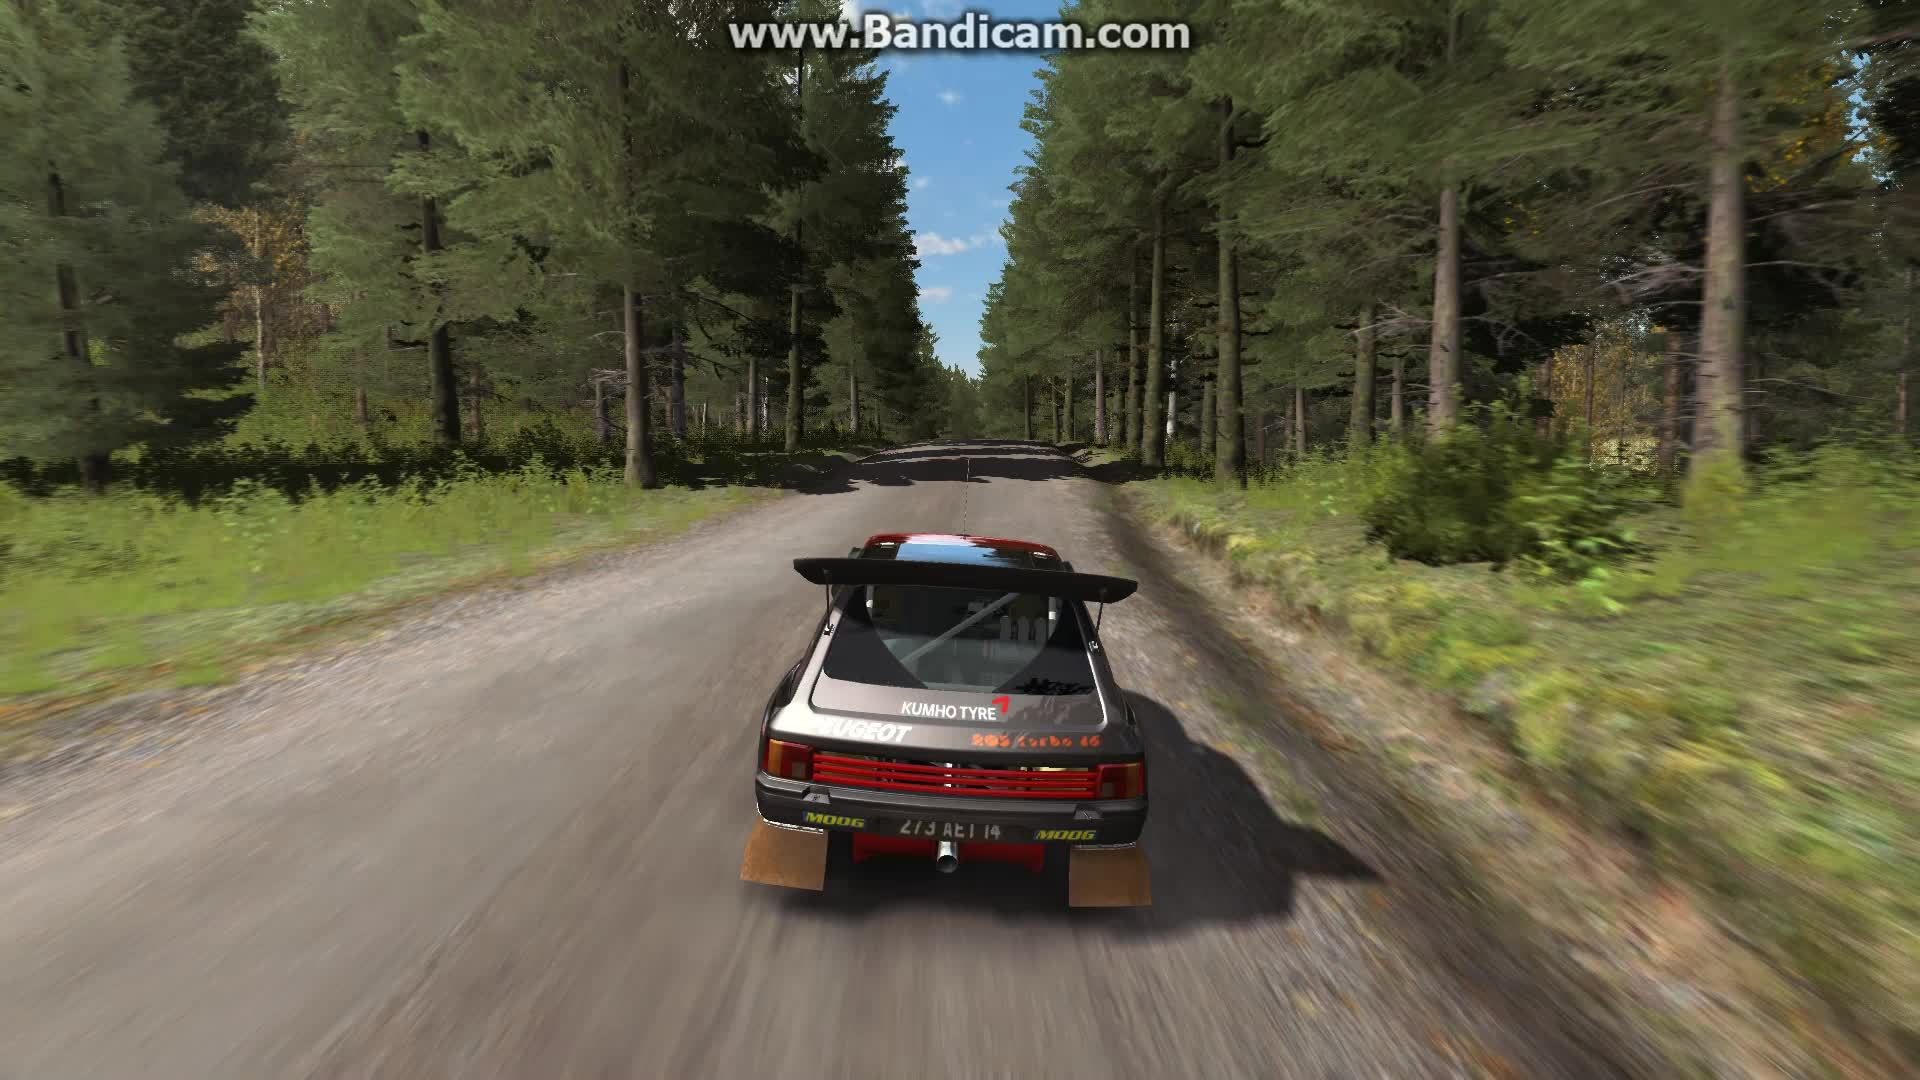 dirtgame, Group B + Flying Finland GIFs